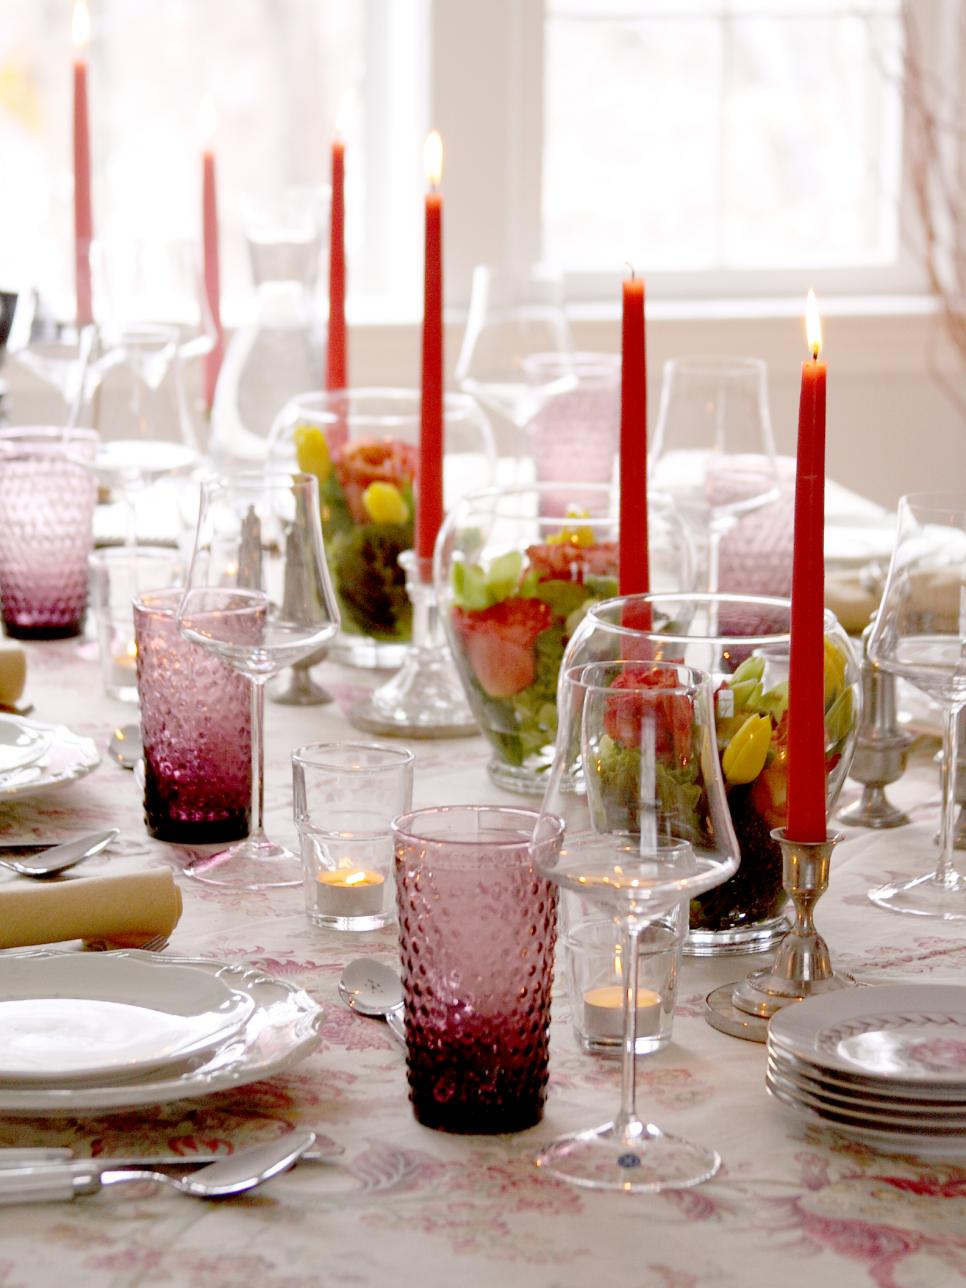 Restaurant table setting ideas - Restaurant Table Setting Ideas 48